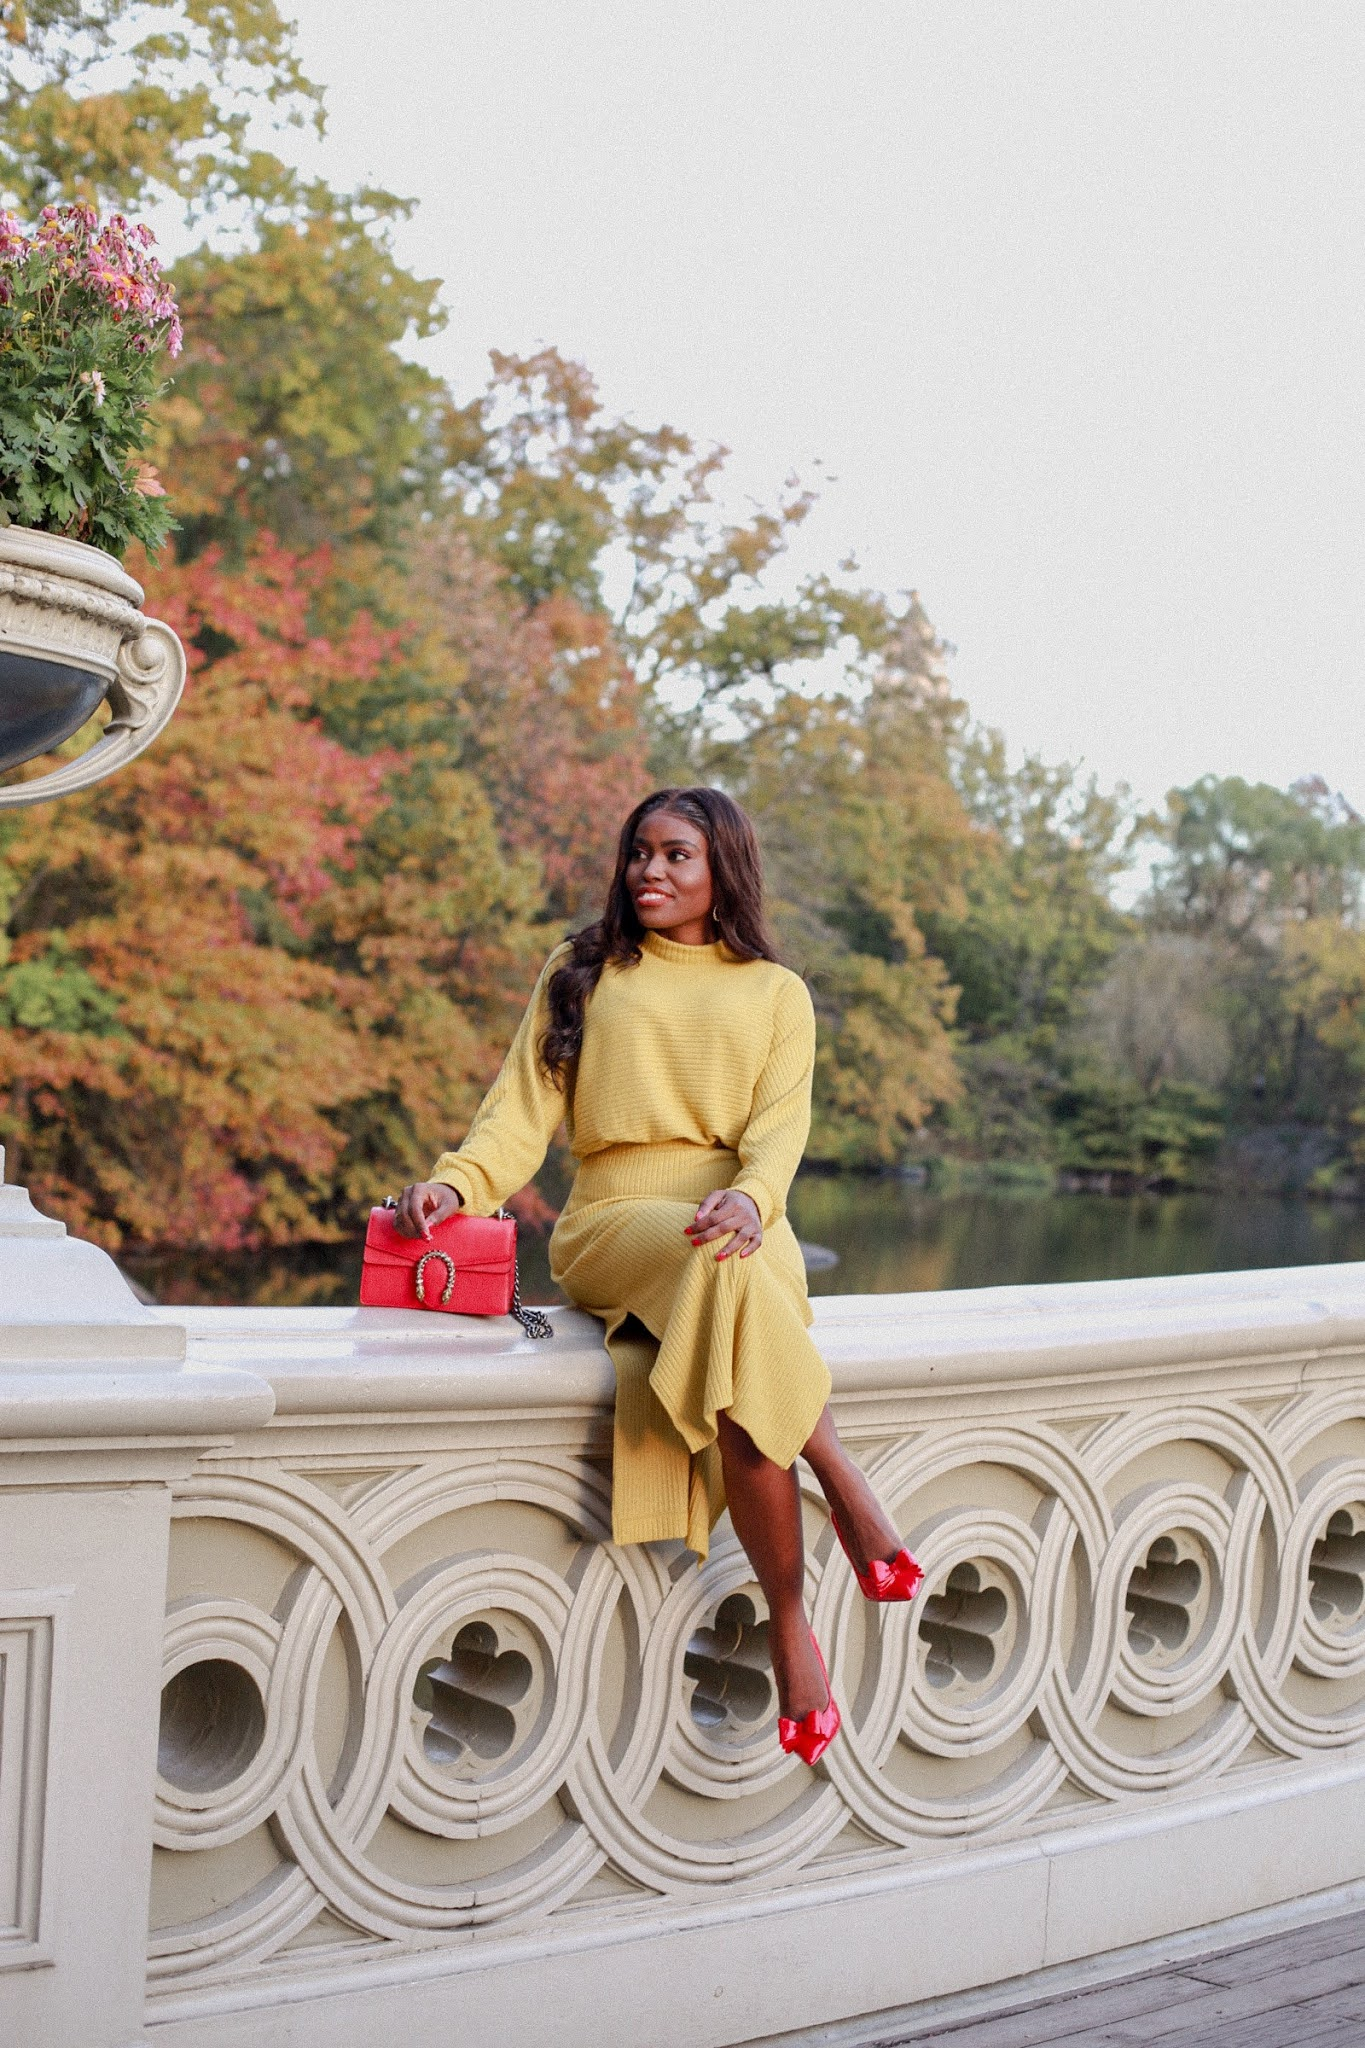 Sweater Dress Outfits - How to Style the Sweater Dress